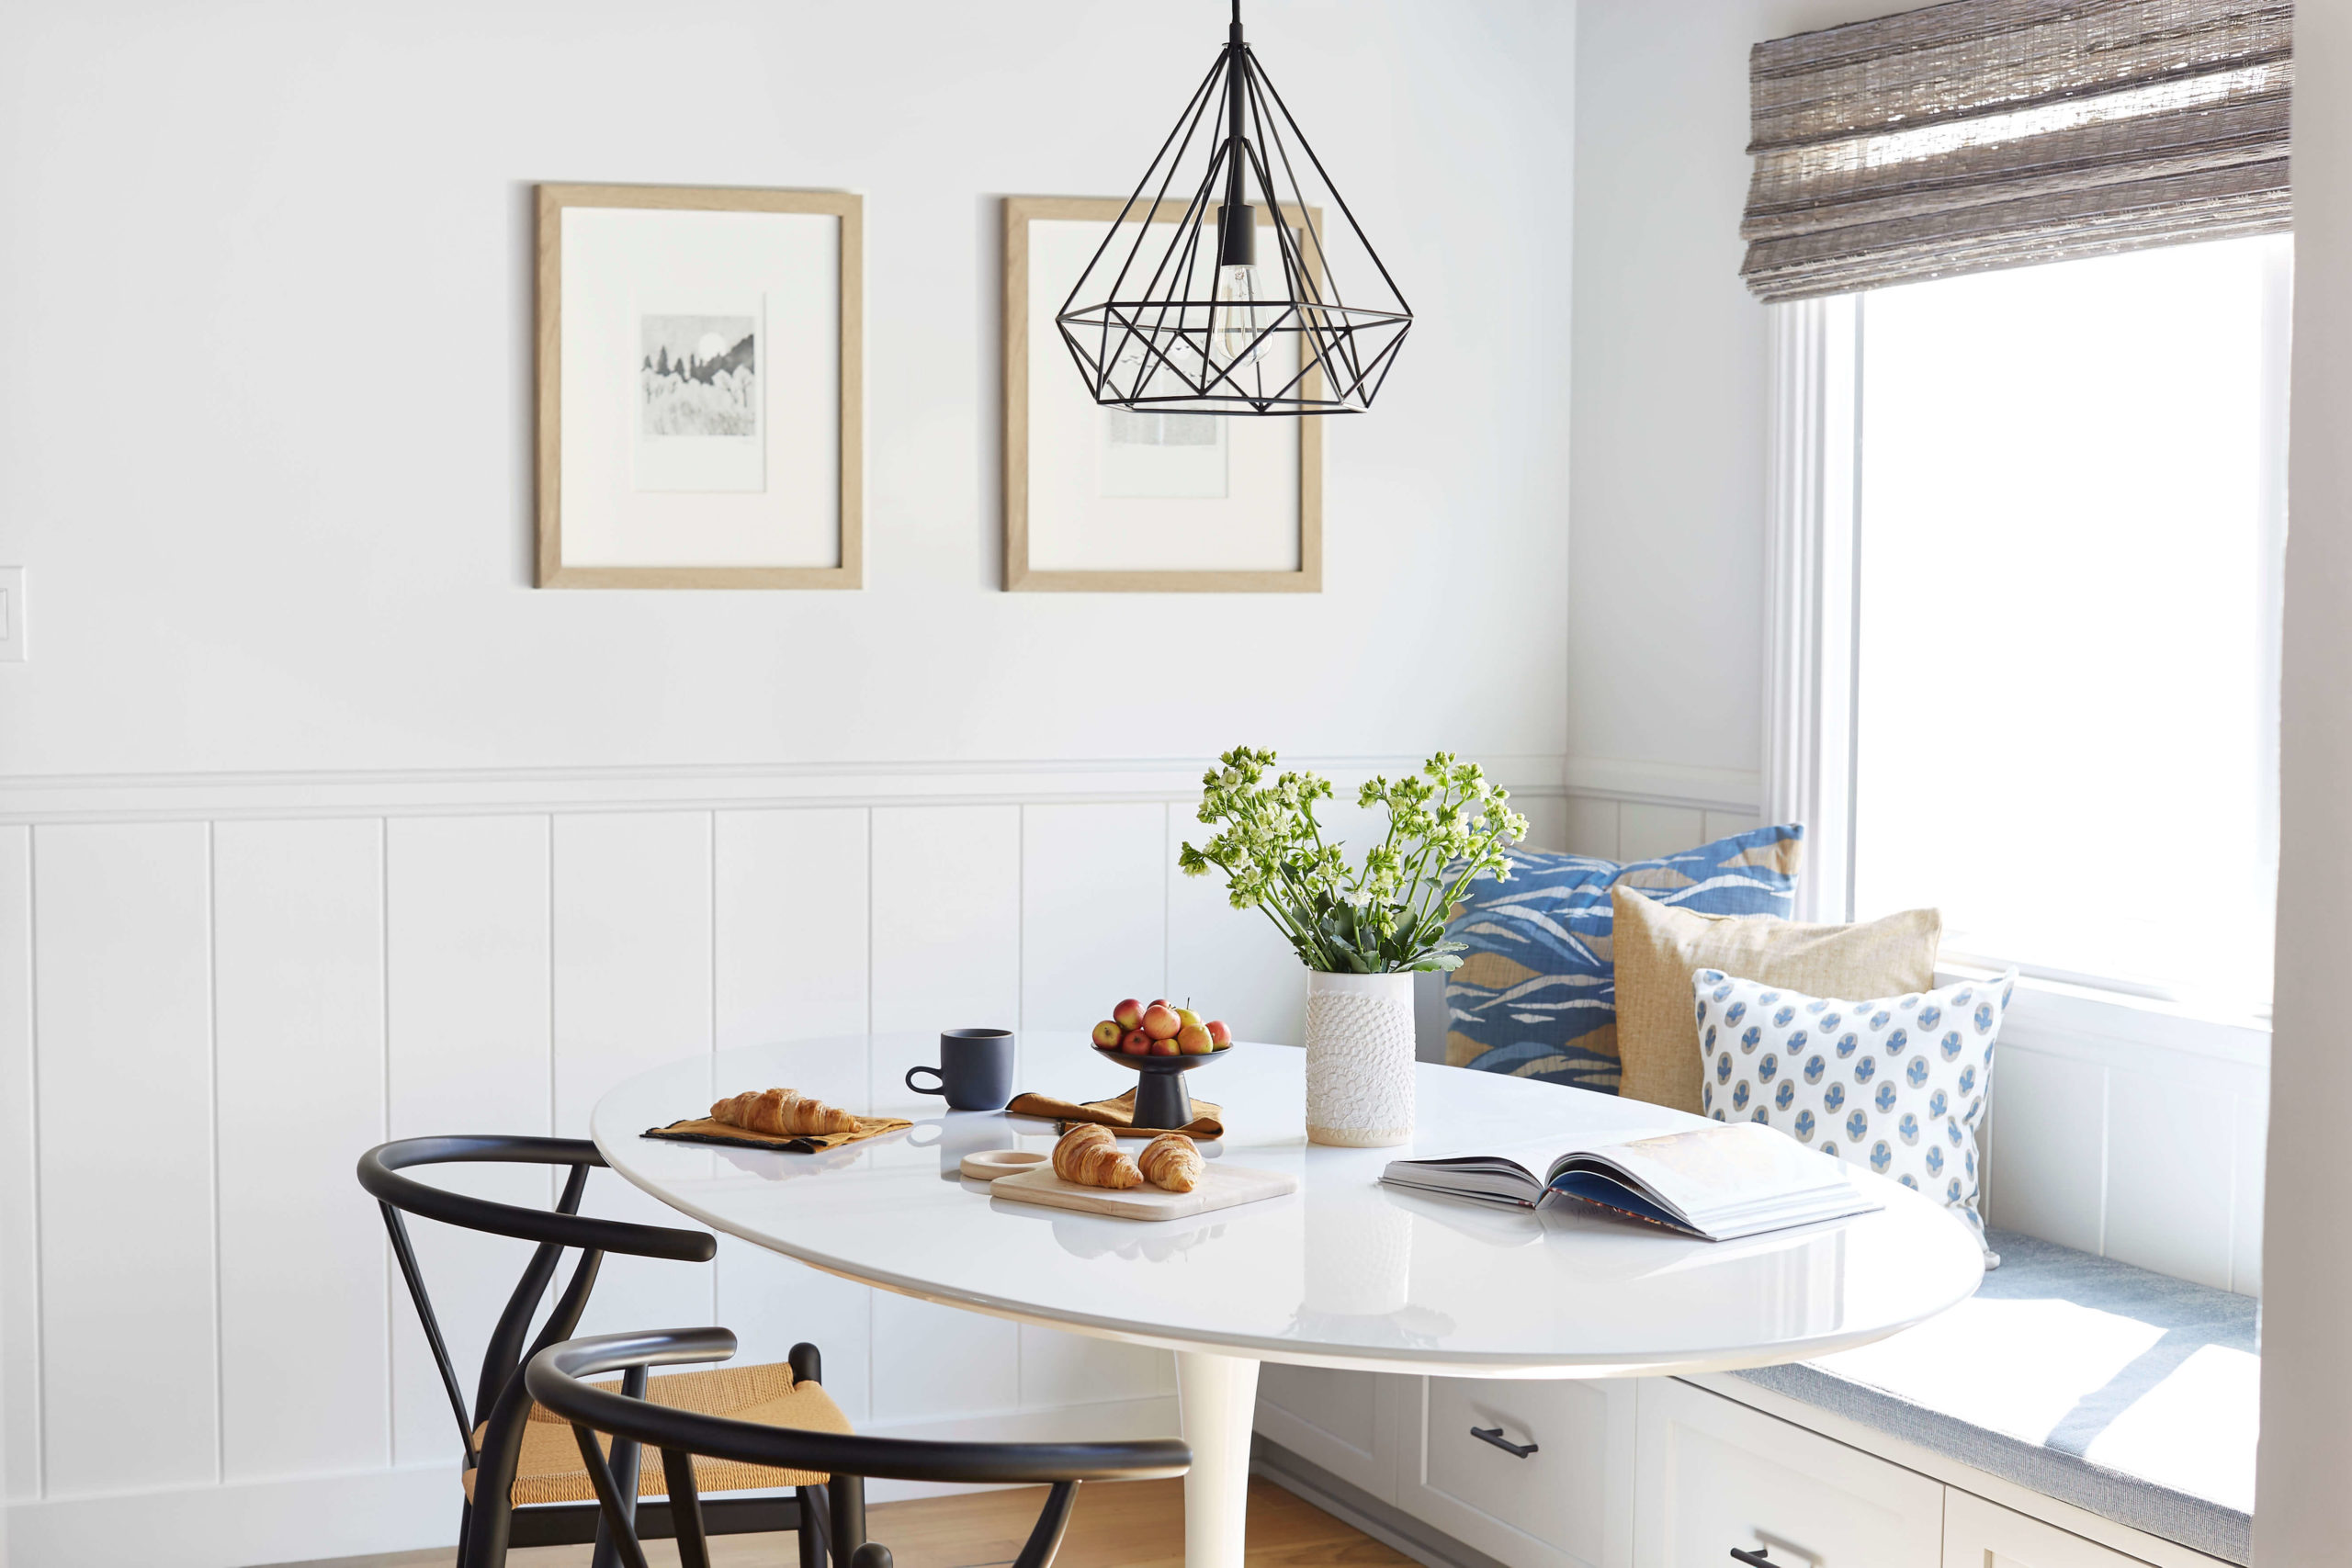 Bright and airy dining nook interior design by Ginny Macdonald Design